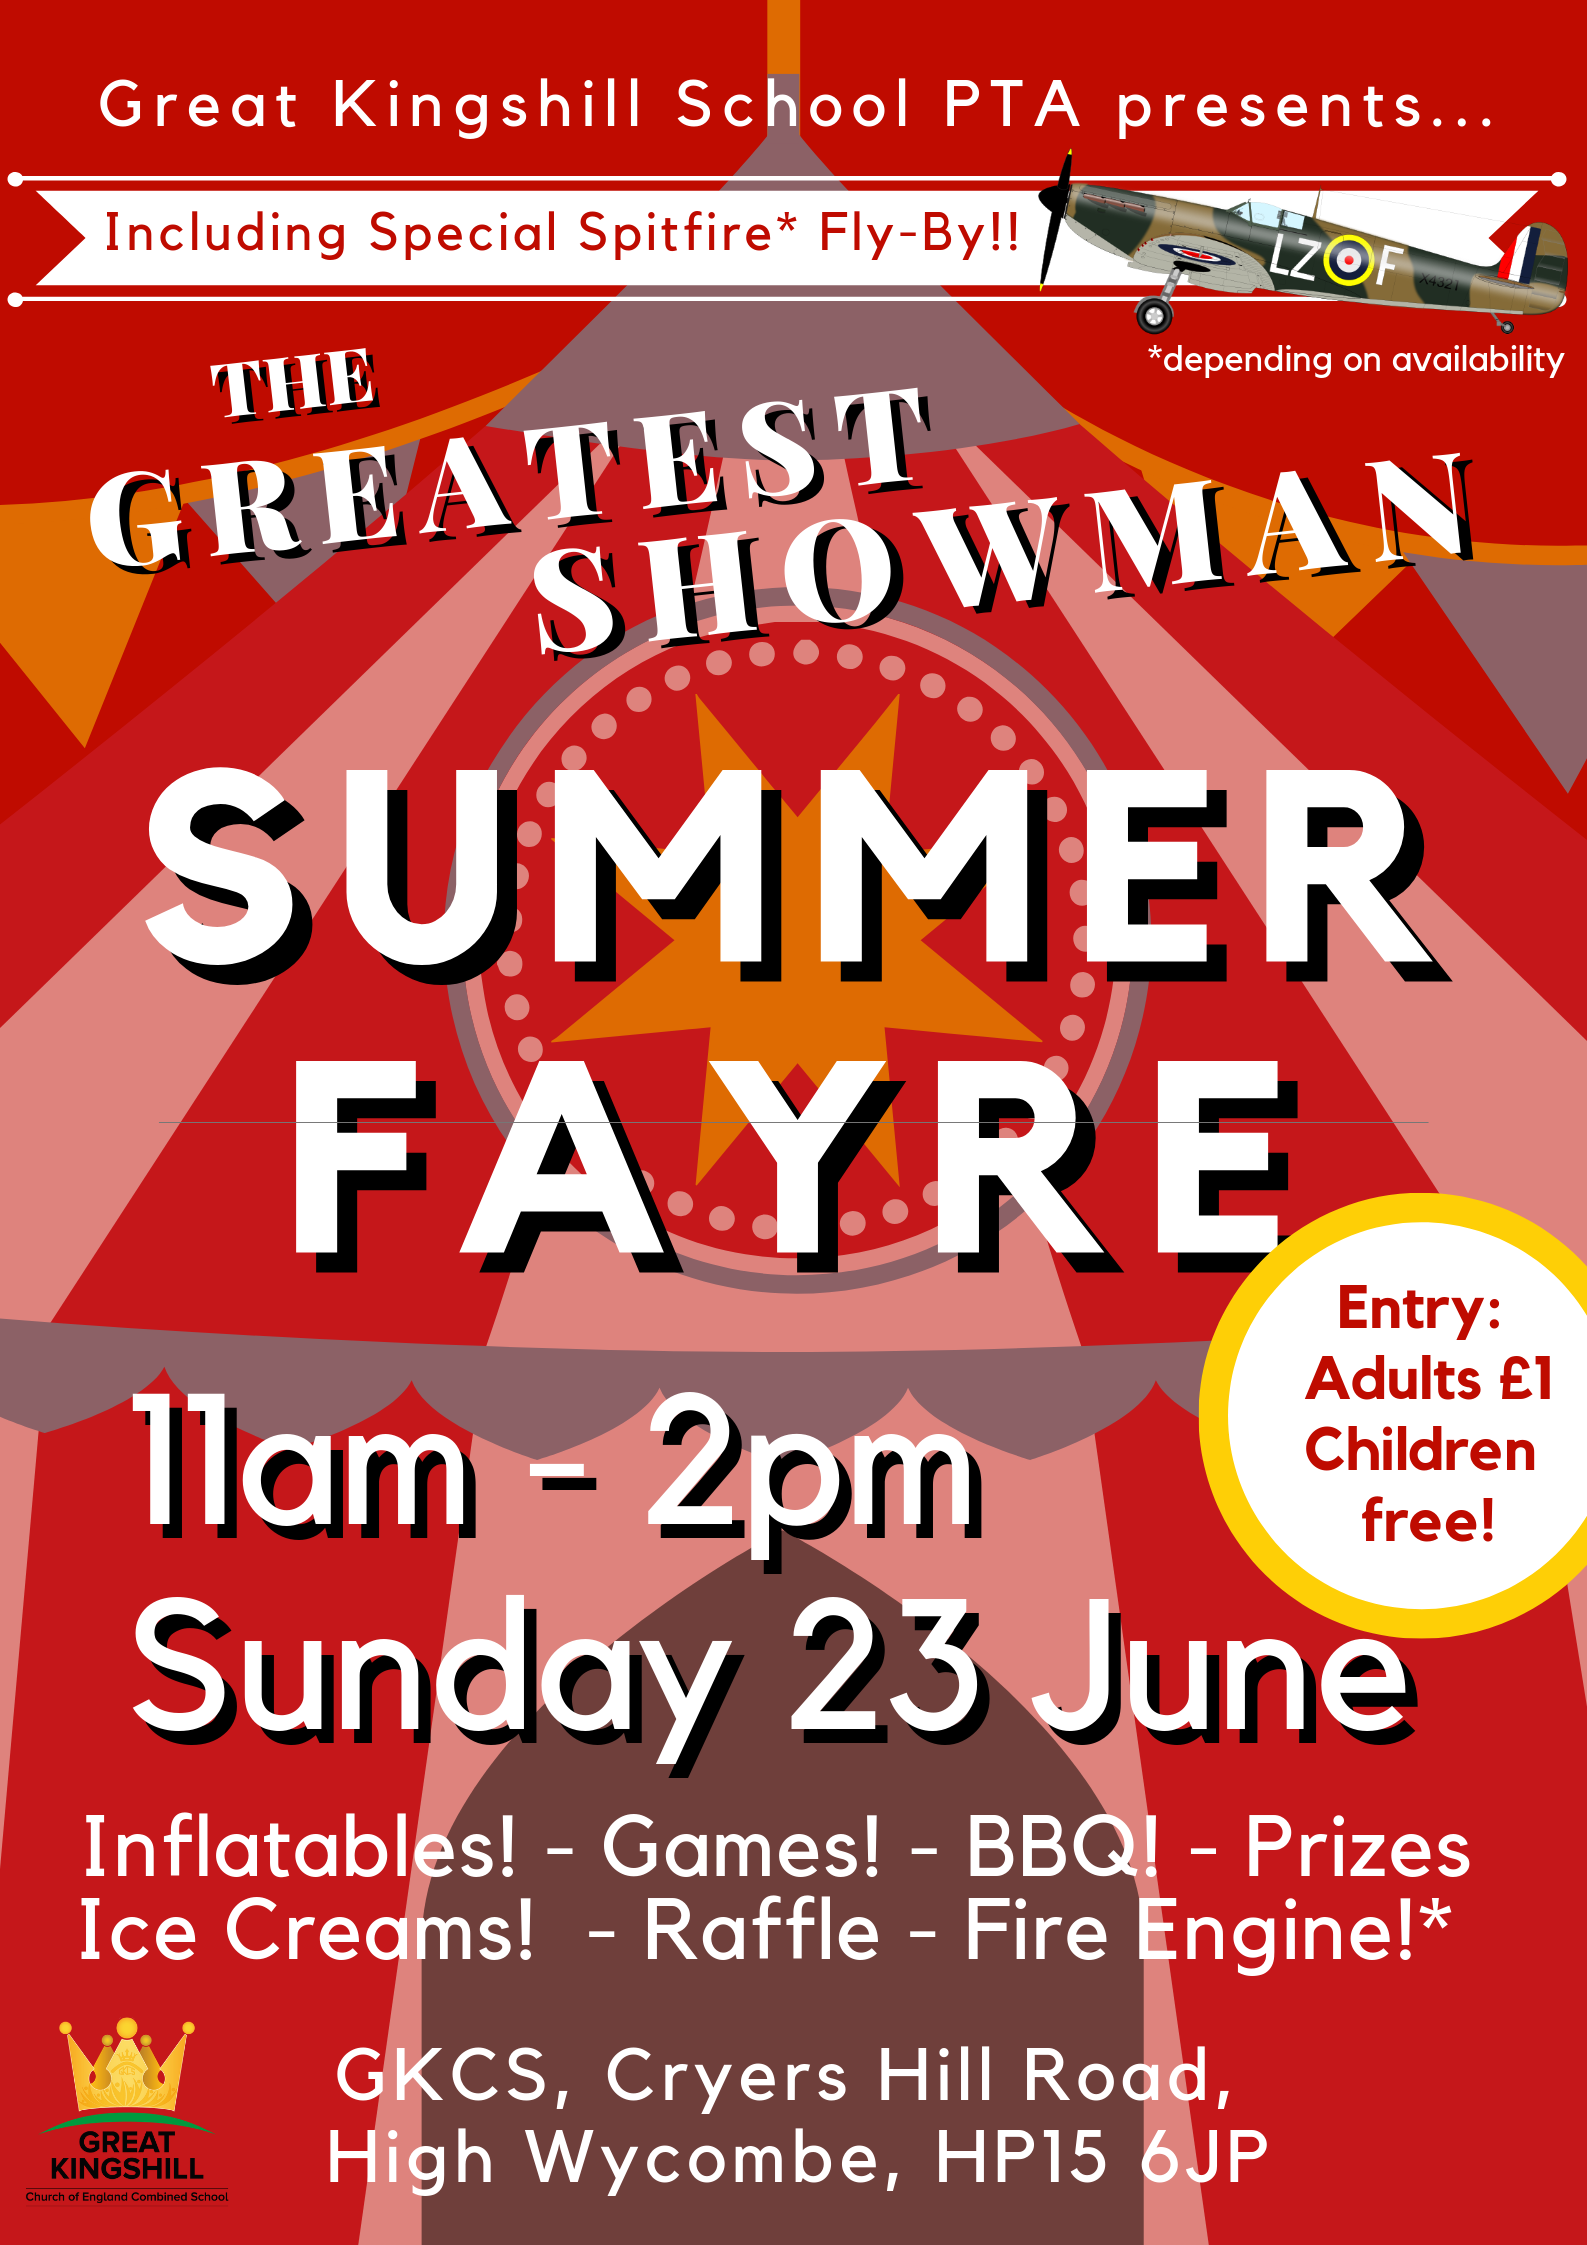 Summer Fayre at GKCS